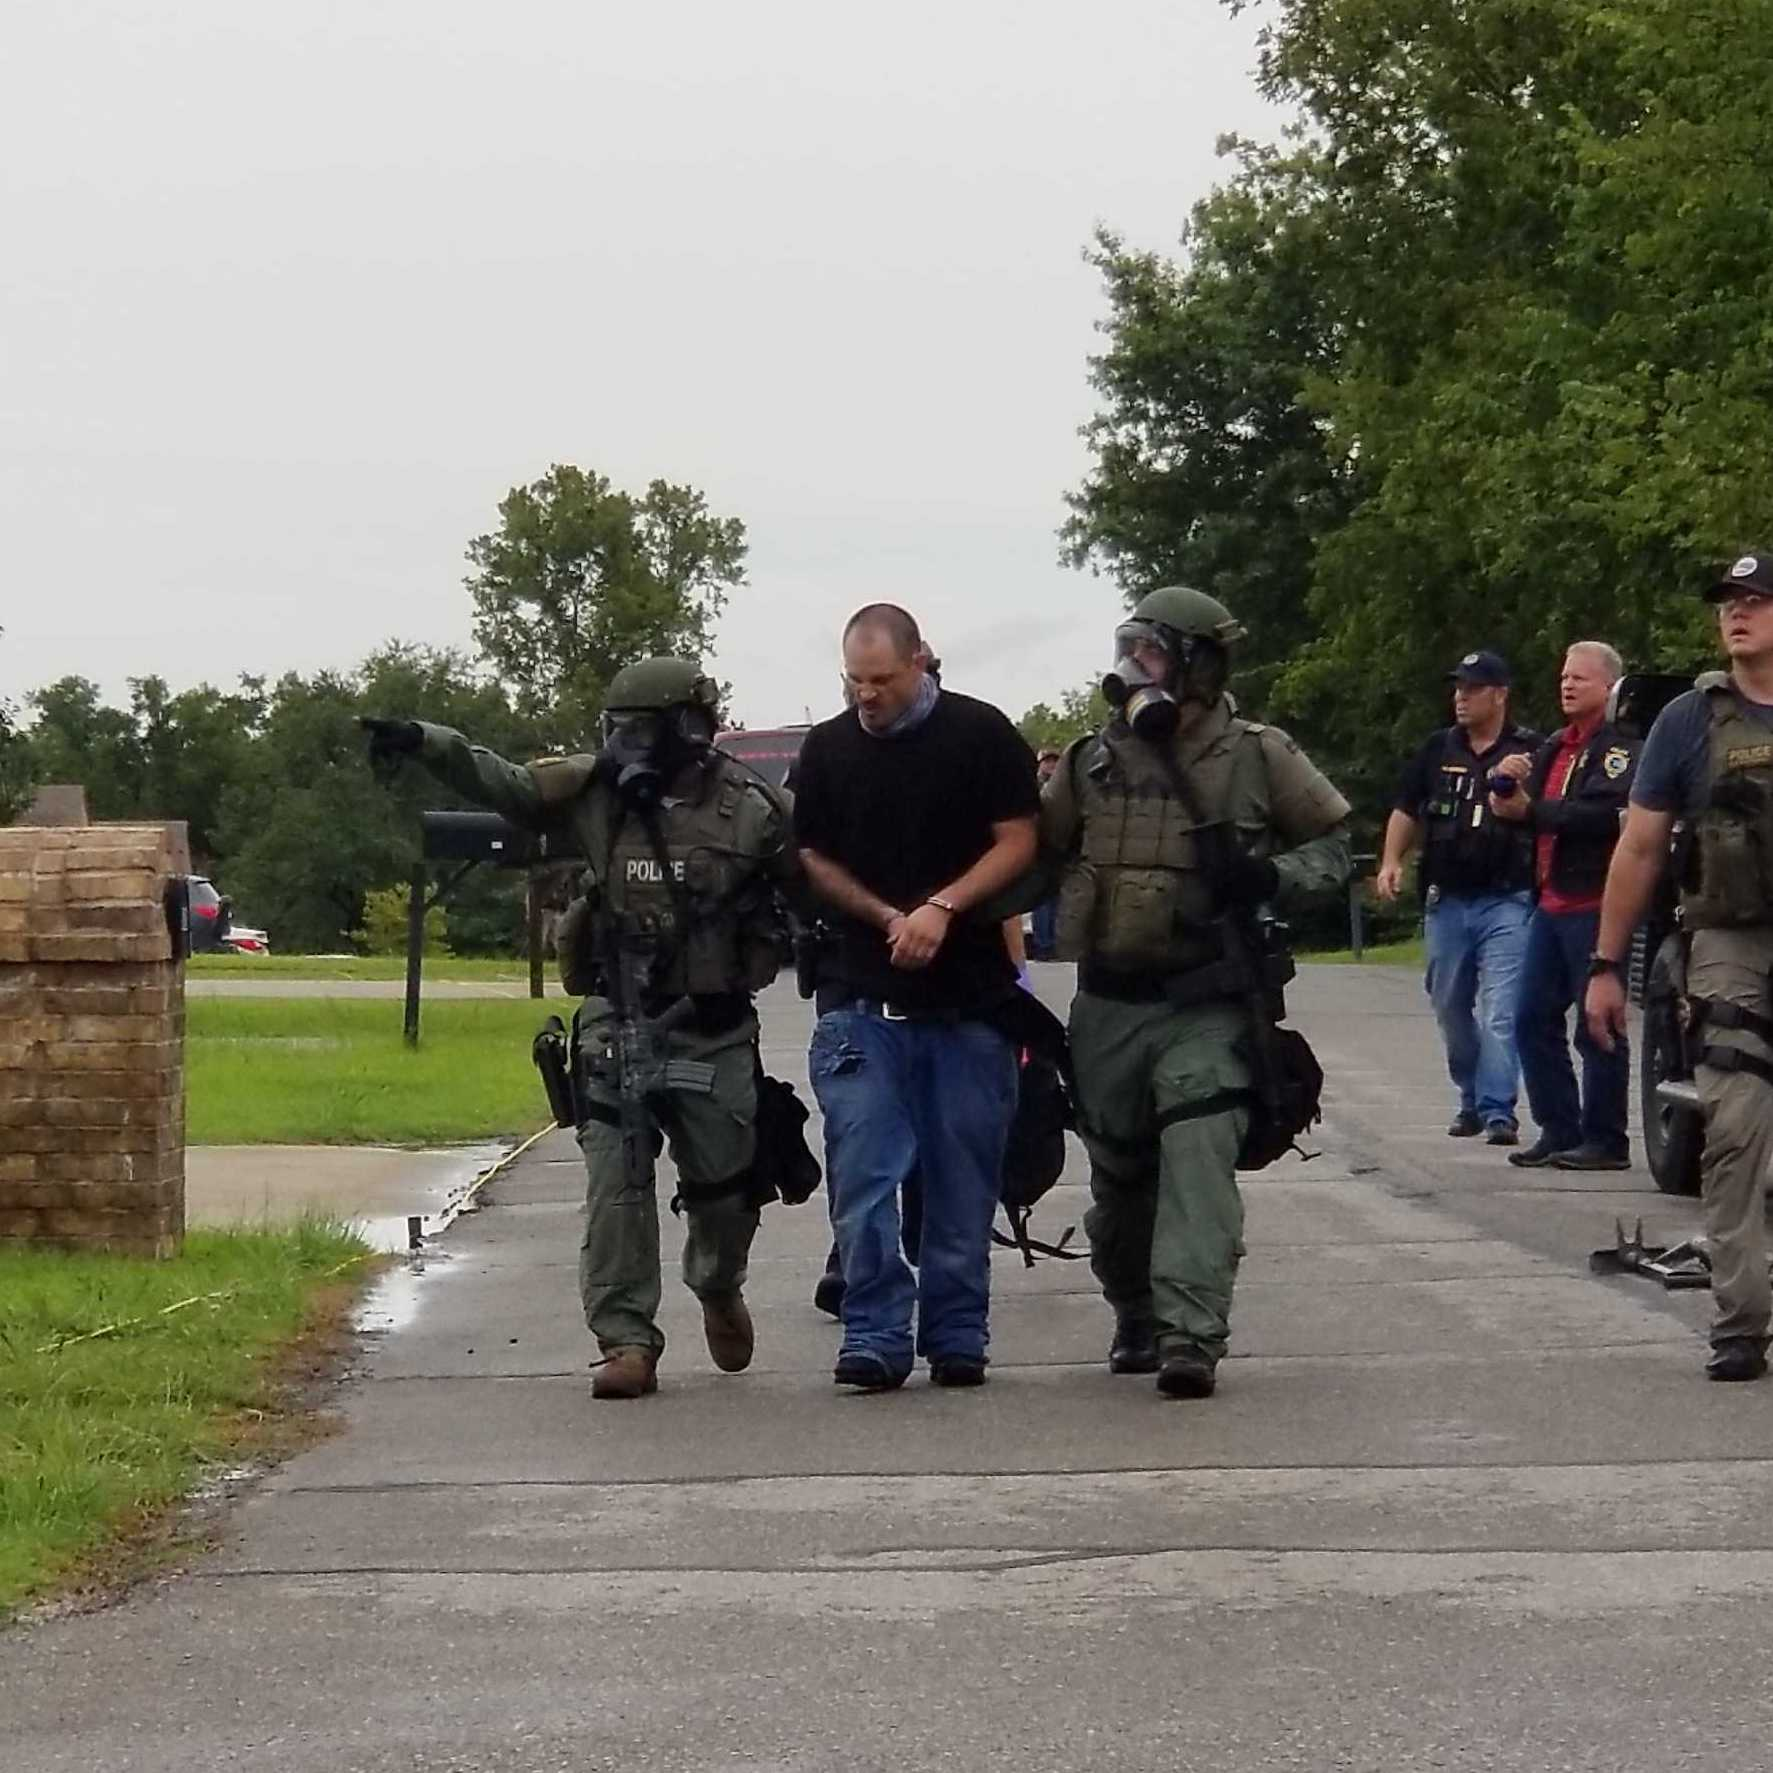 Librao Rosales ls led outside by members of the Southwest Area SWAT Team after a standoff on Friday.